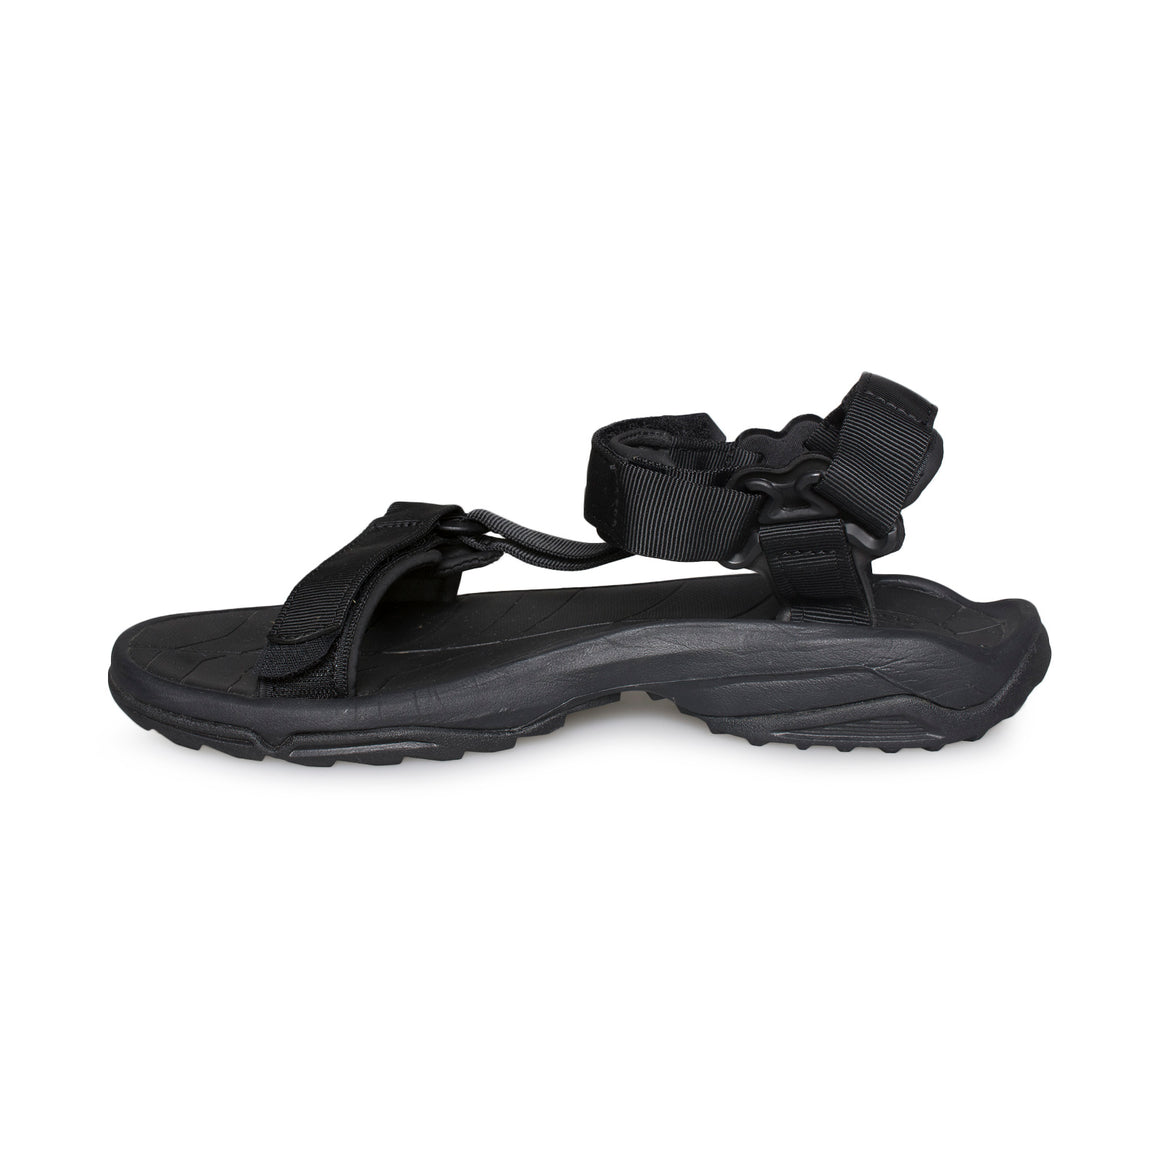 TEVA Terra Fi Lite Black Sandals - Men's